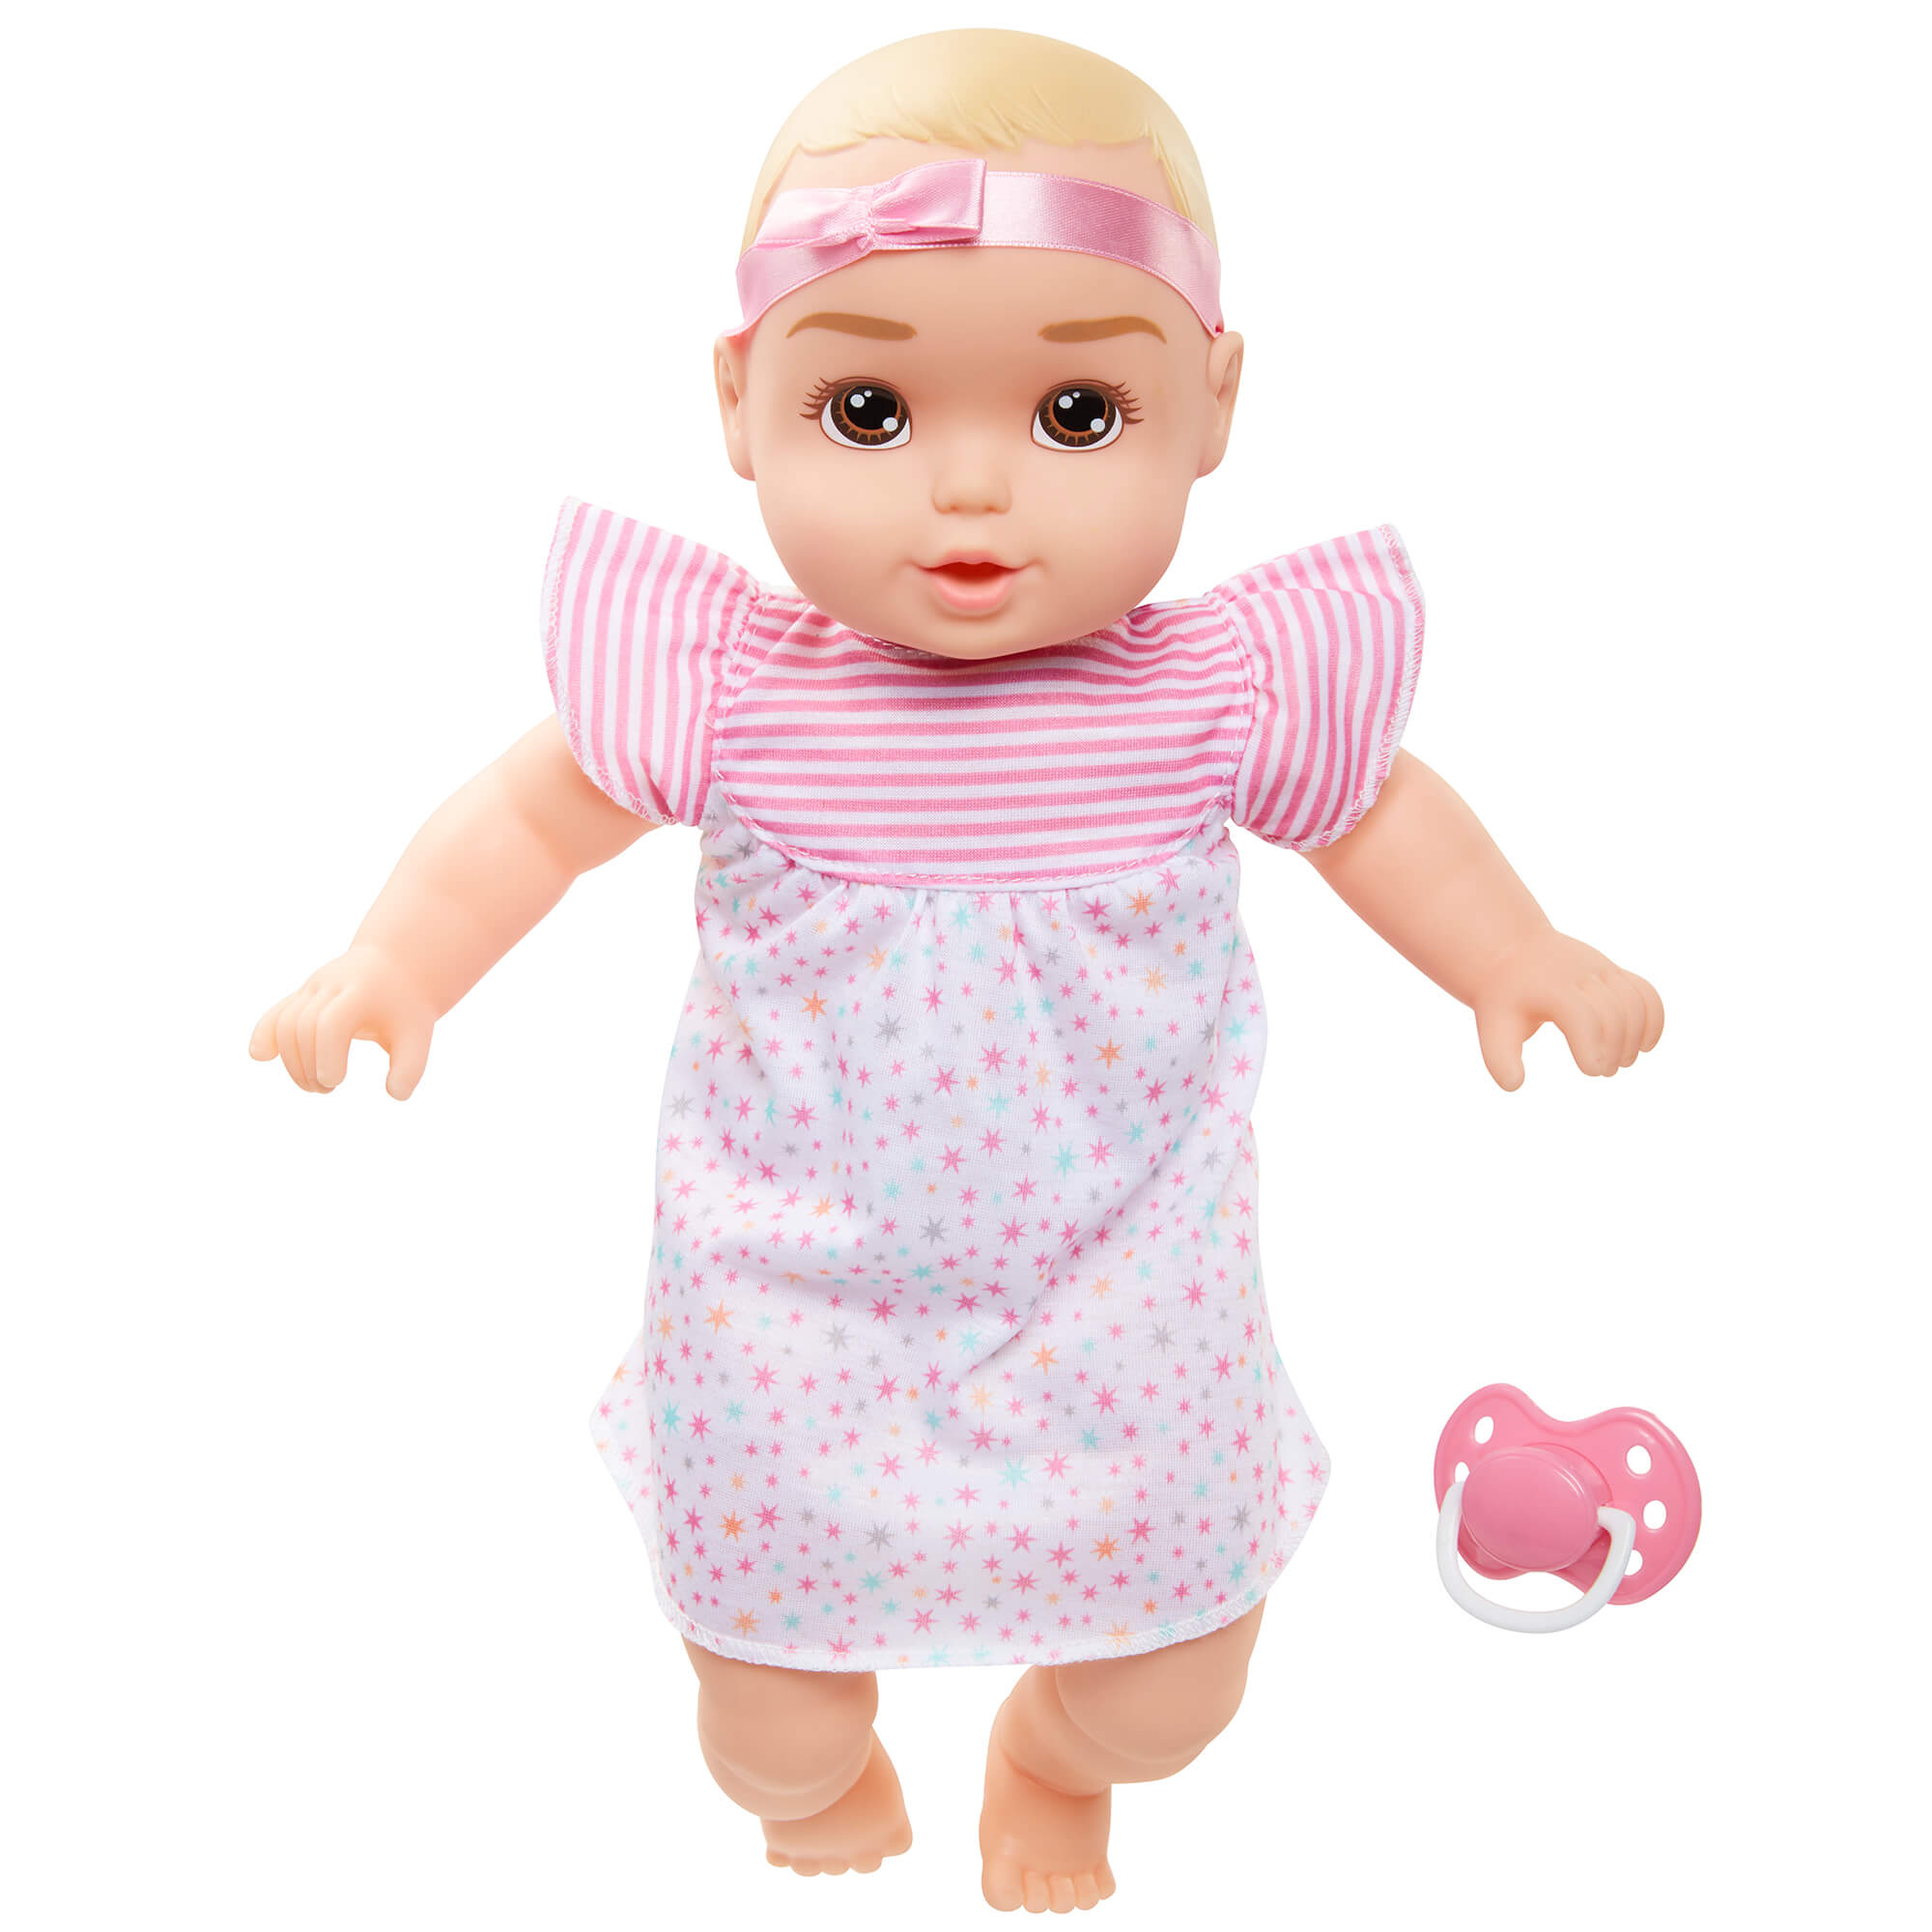 Perfectly Cute Baby 14 inch My Sweet Baby Girl Doll (Blonde - Brown Eyes)